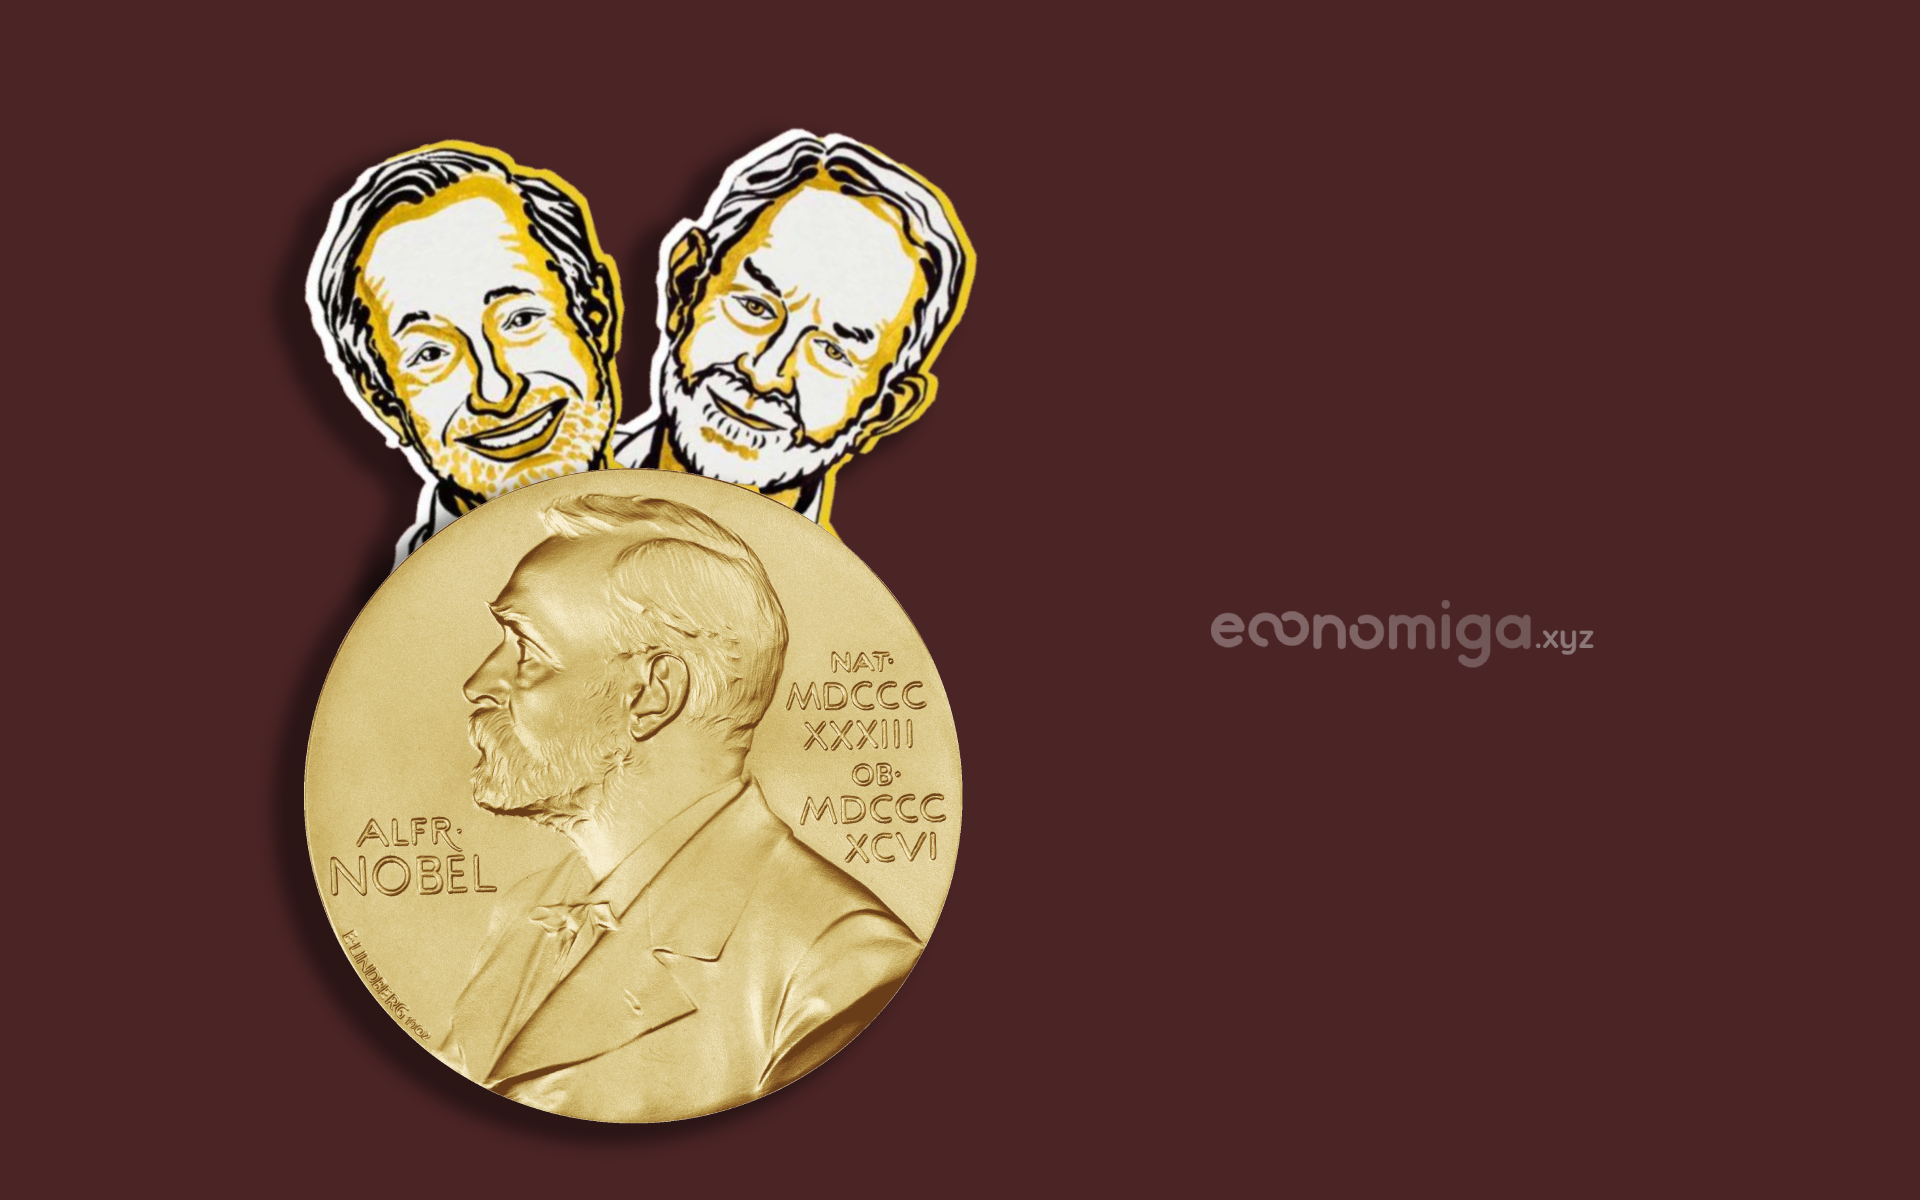 Paul Milgrom and Robert Wilson win the Nobel Prize in Economic Sciences for the Year 2020